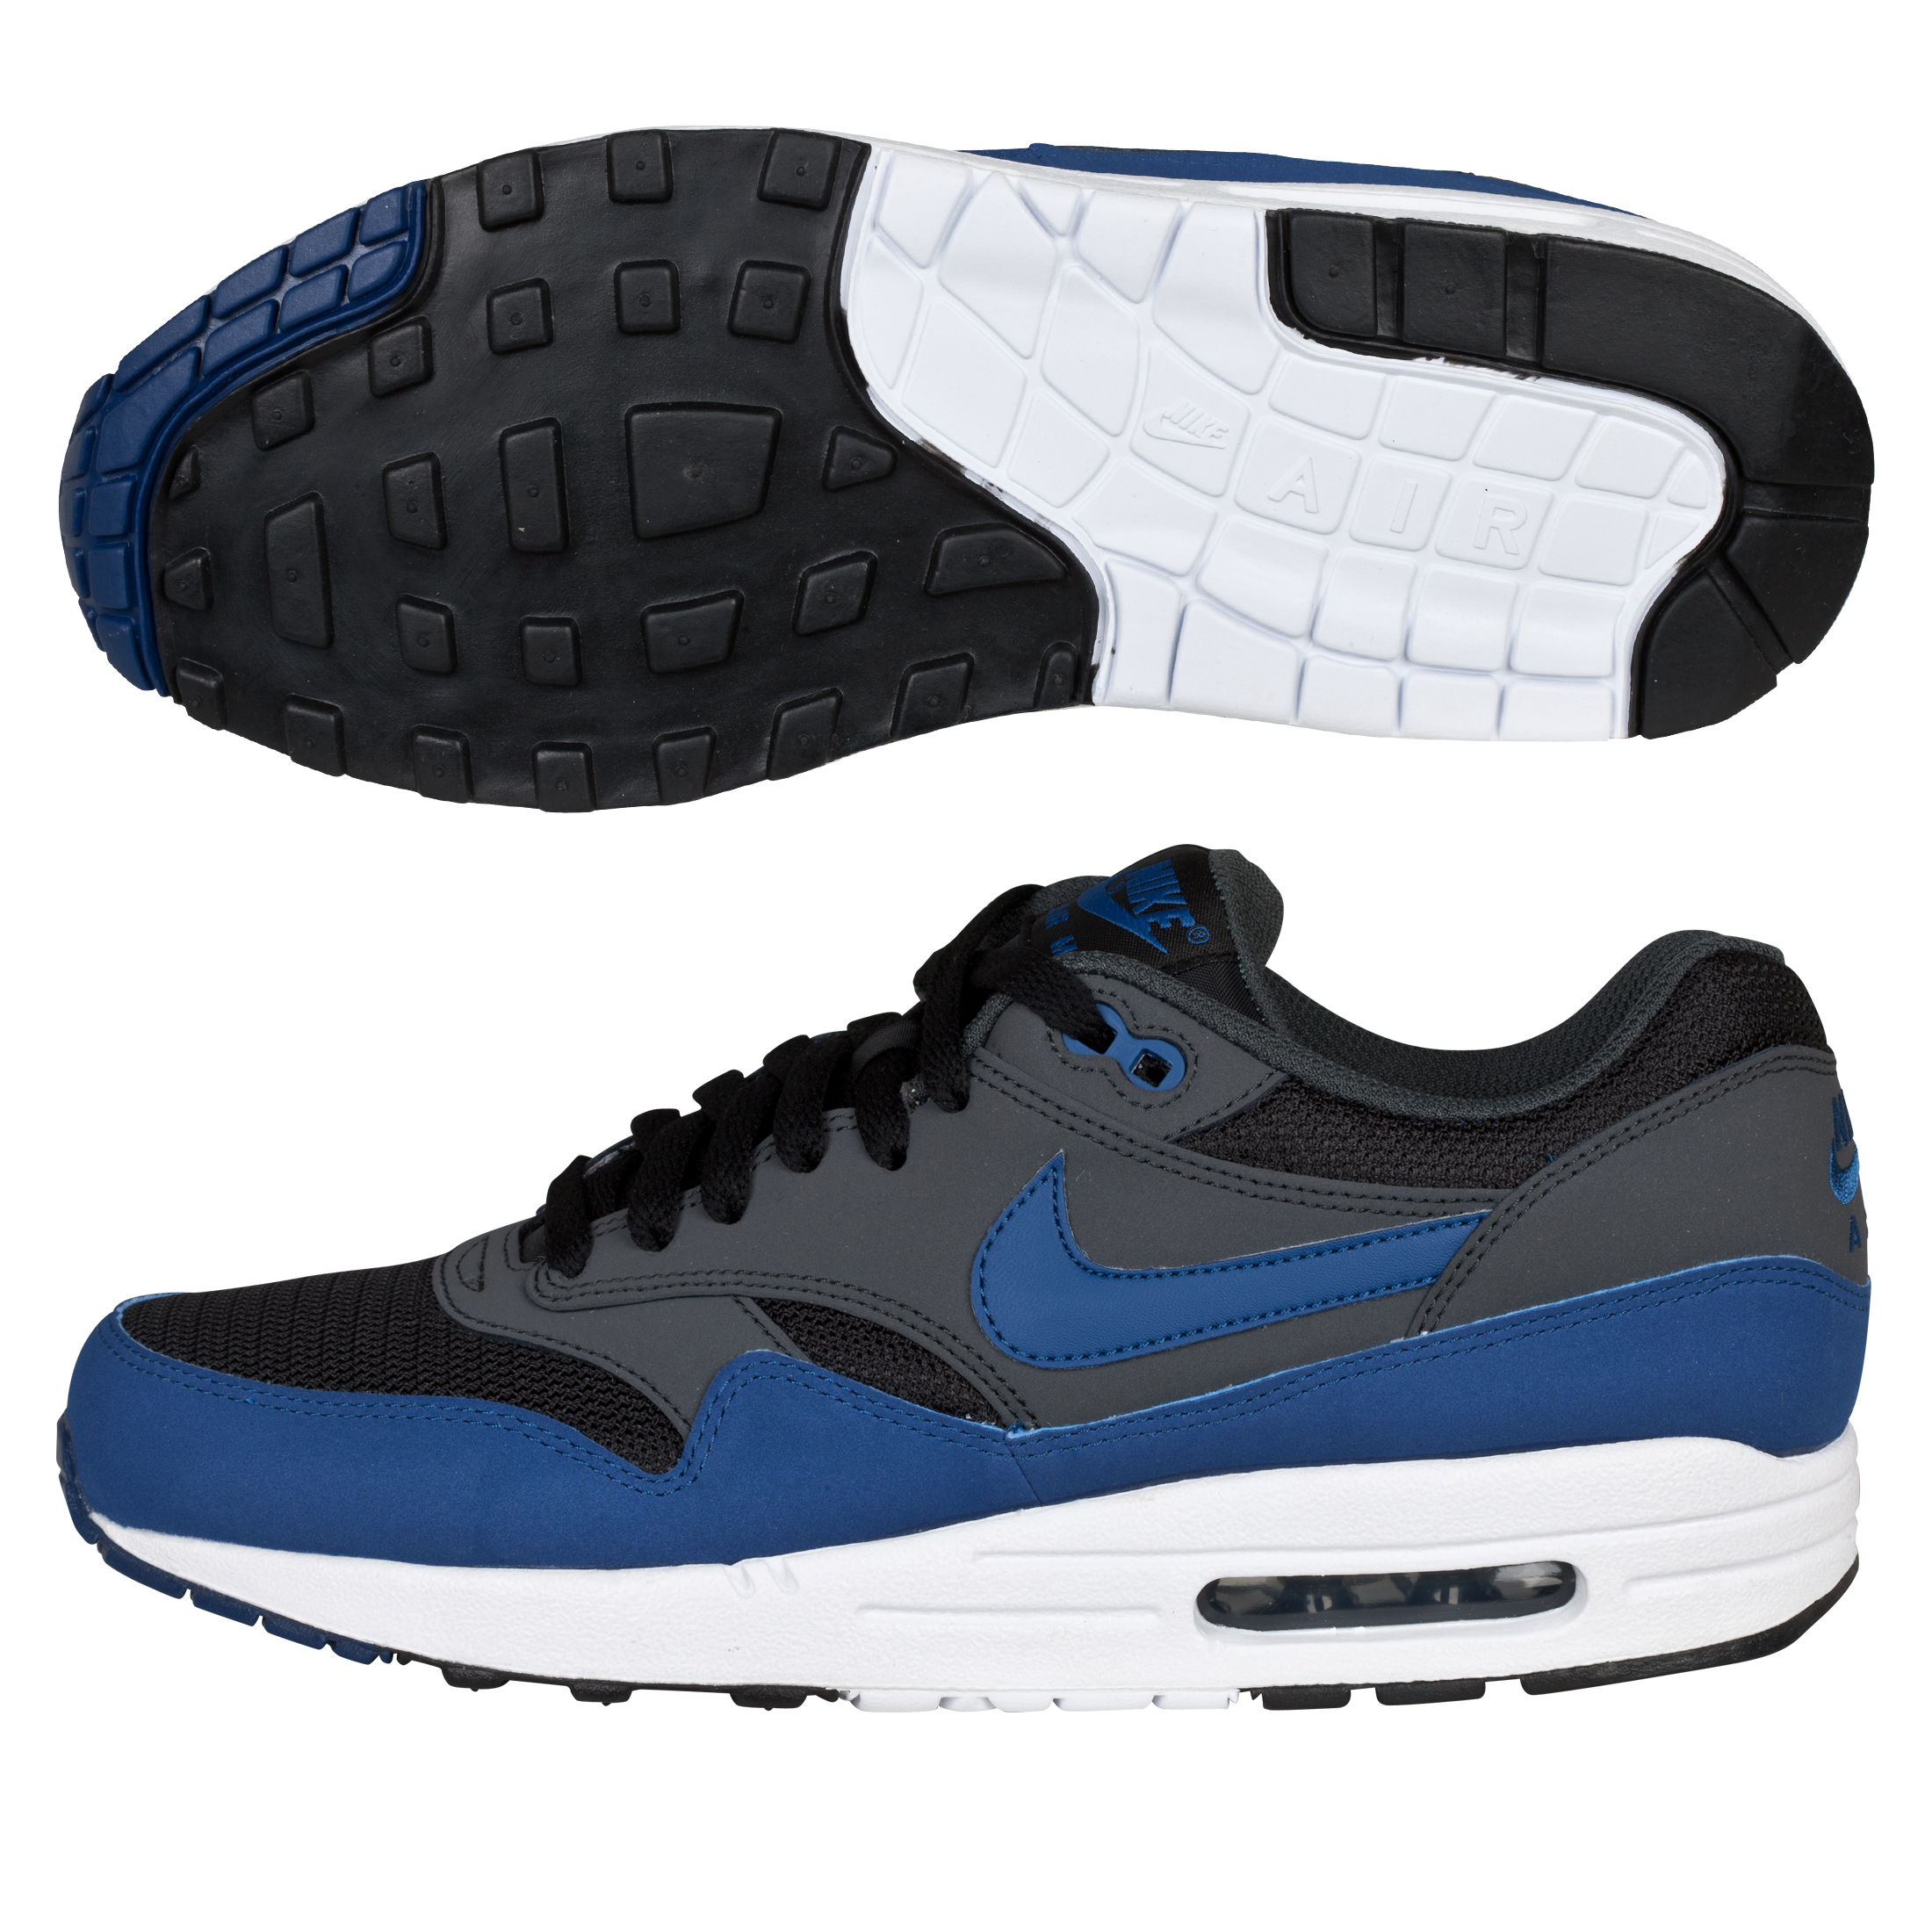 Nike Air Max 1 Trainers - Blue/Black